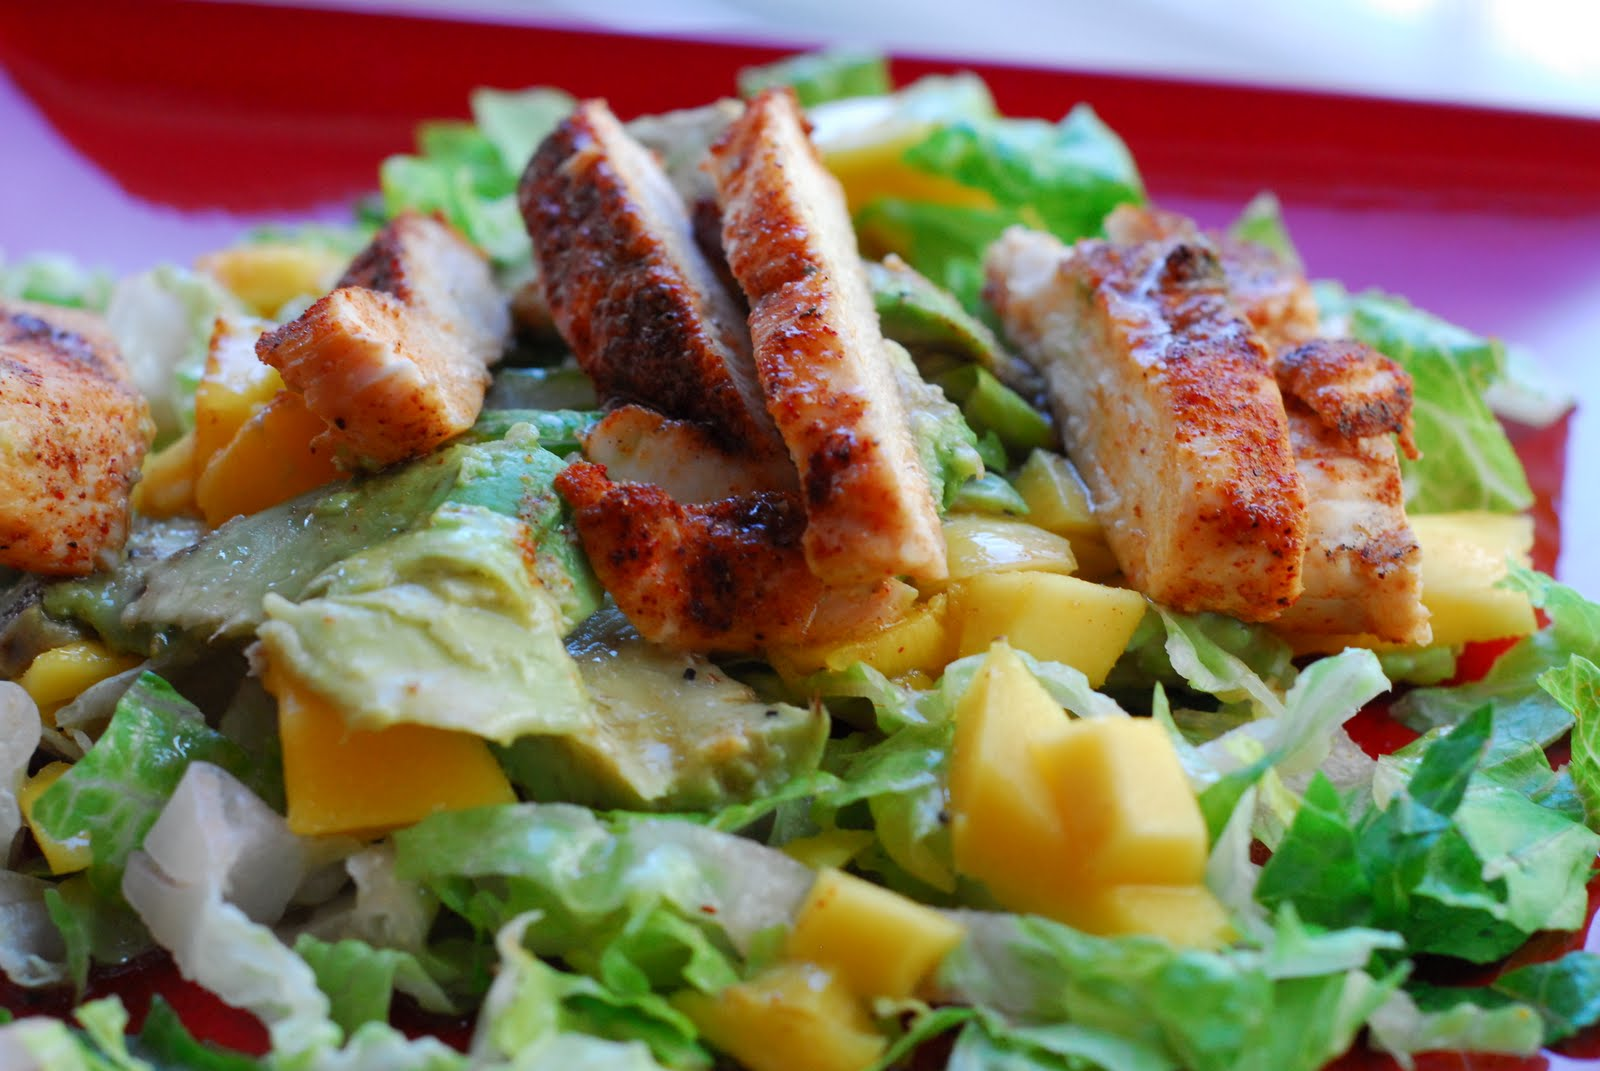 Bites: Spicy Honey Chicken Salad